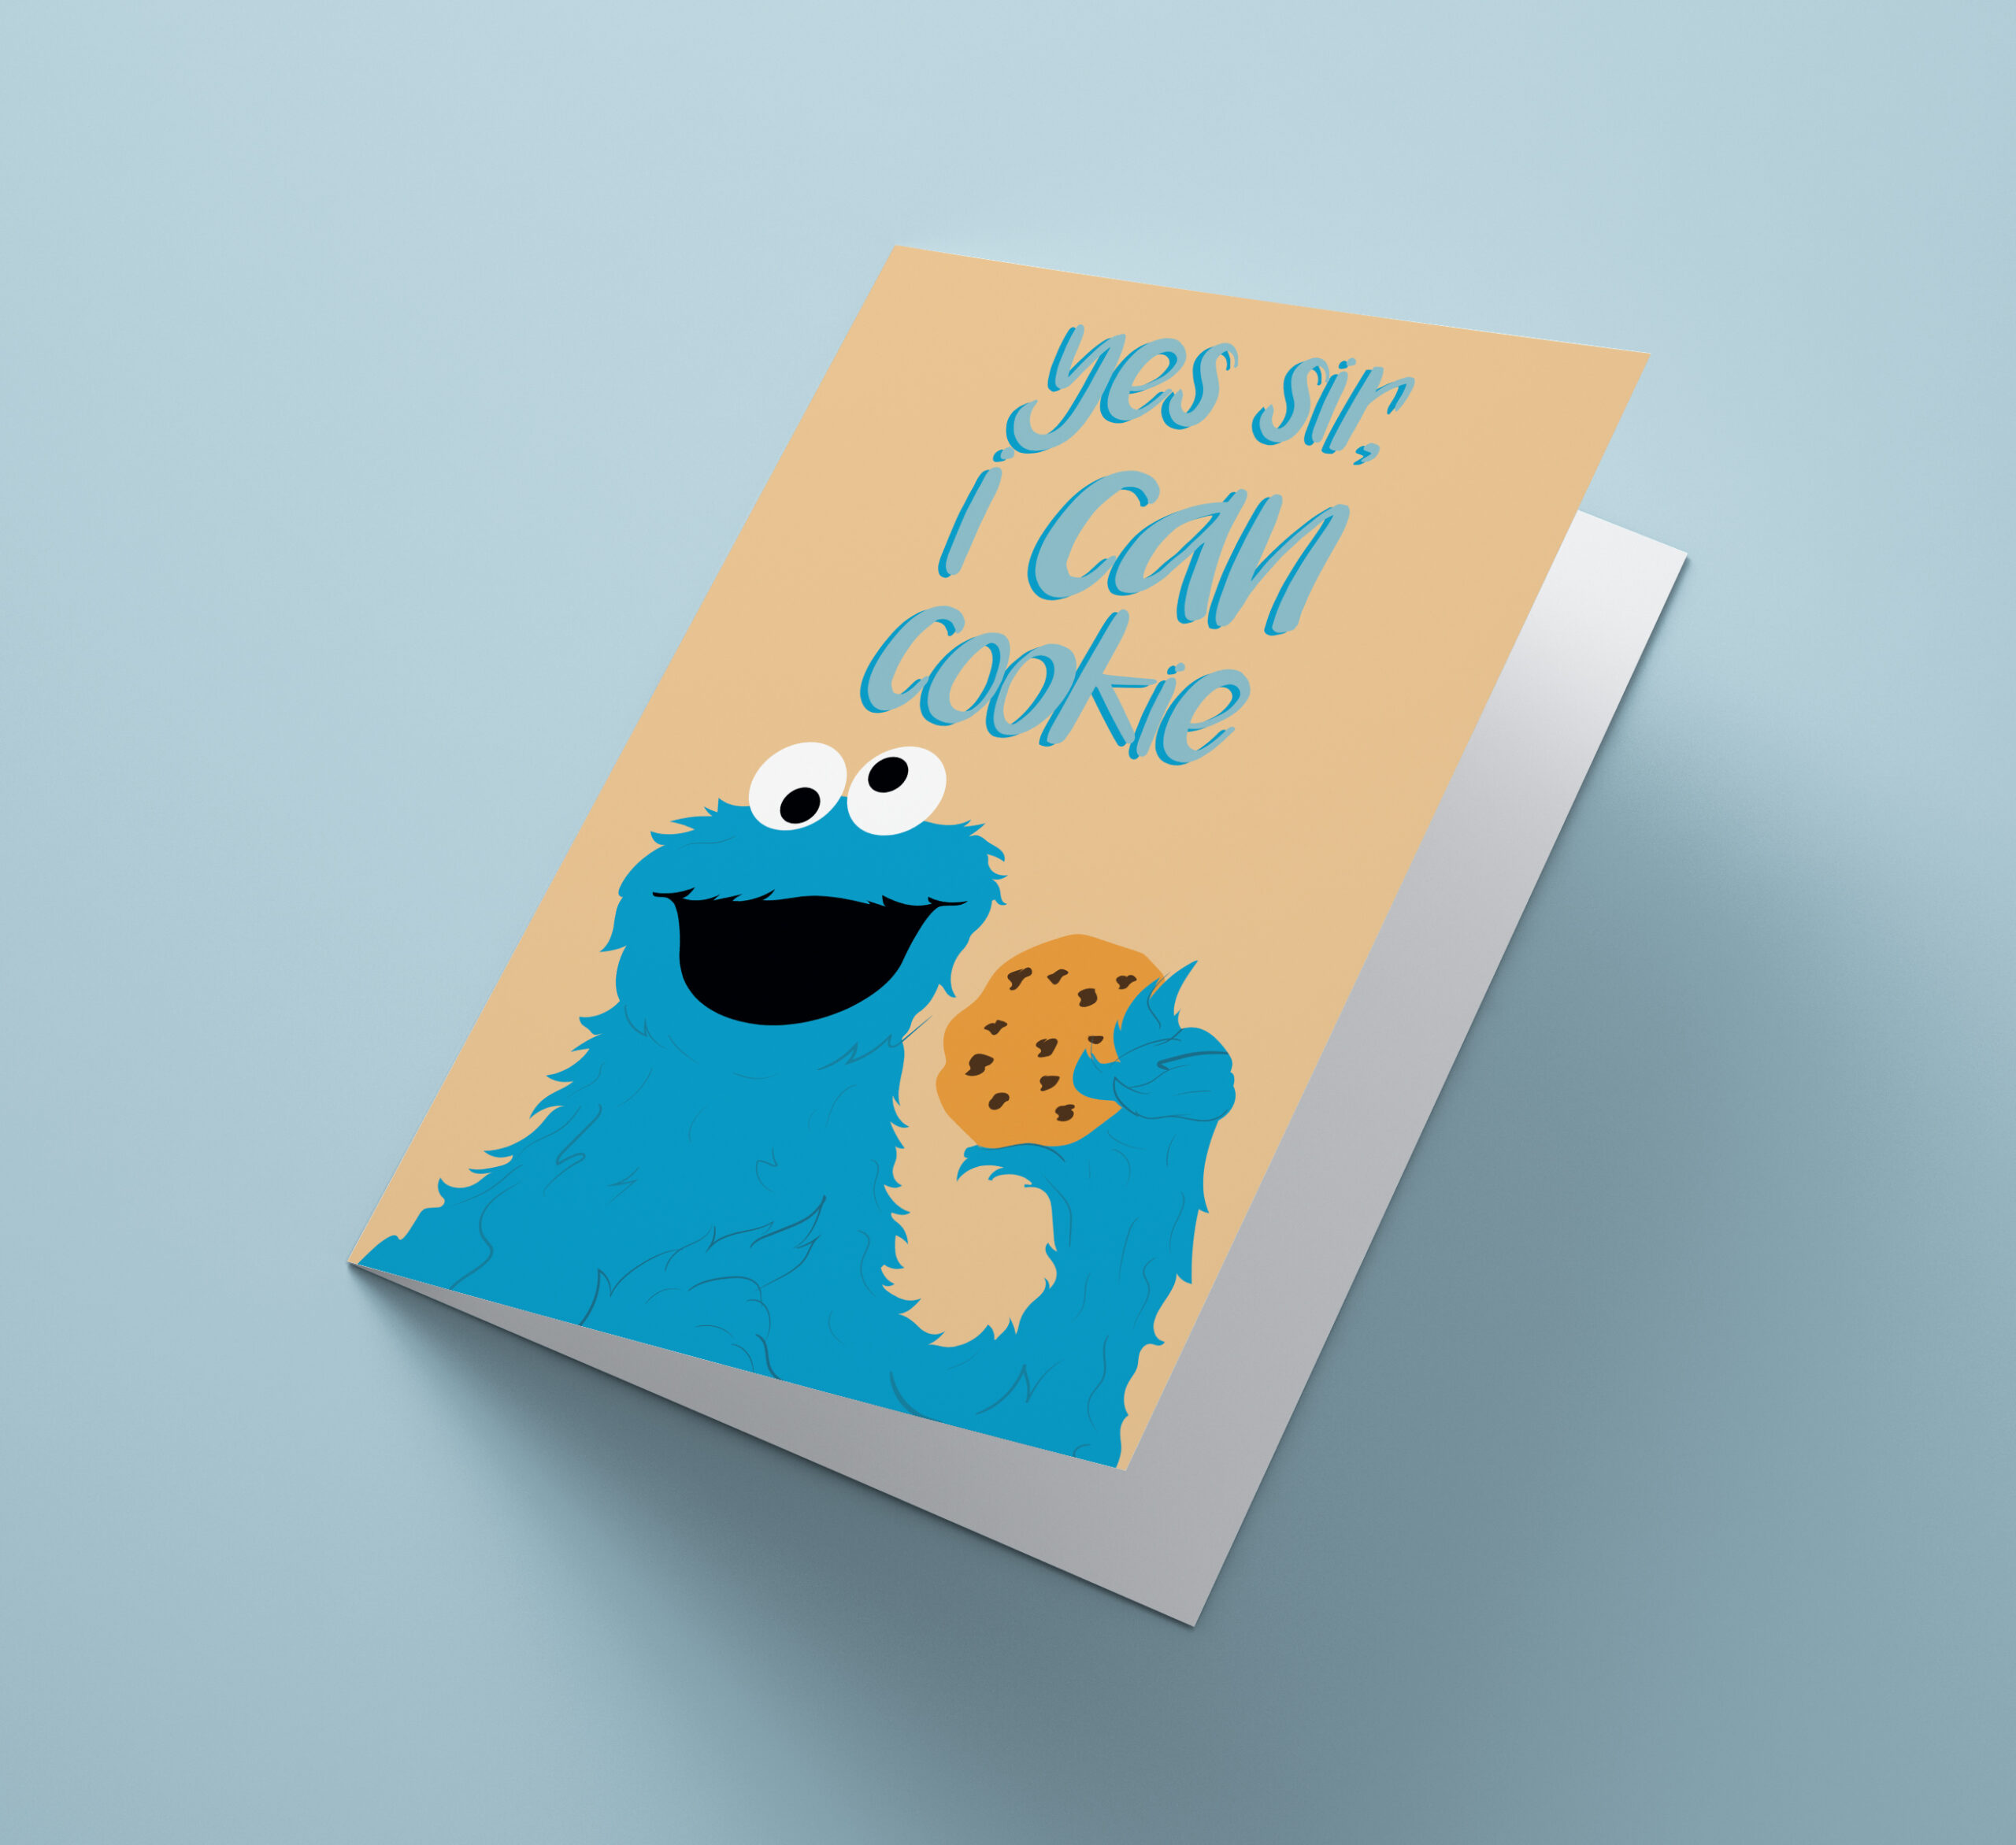 Yes Sir, I Can Cookie